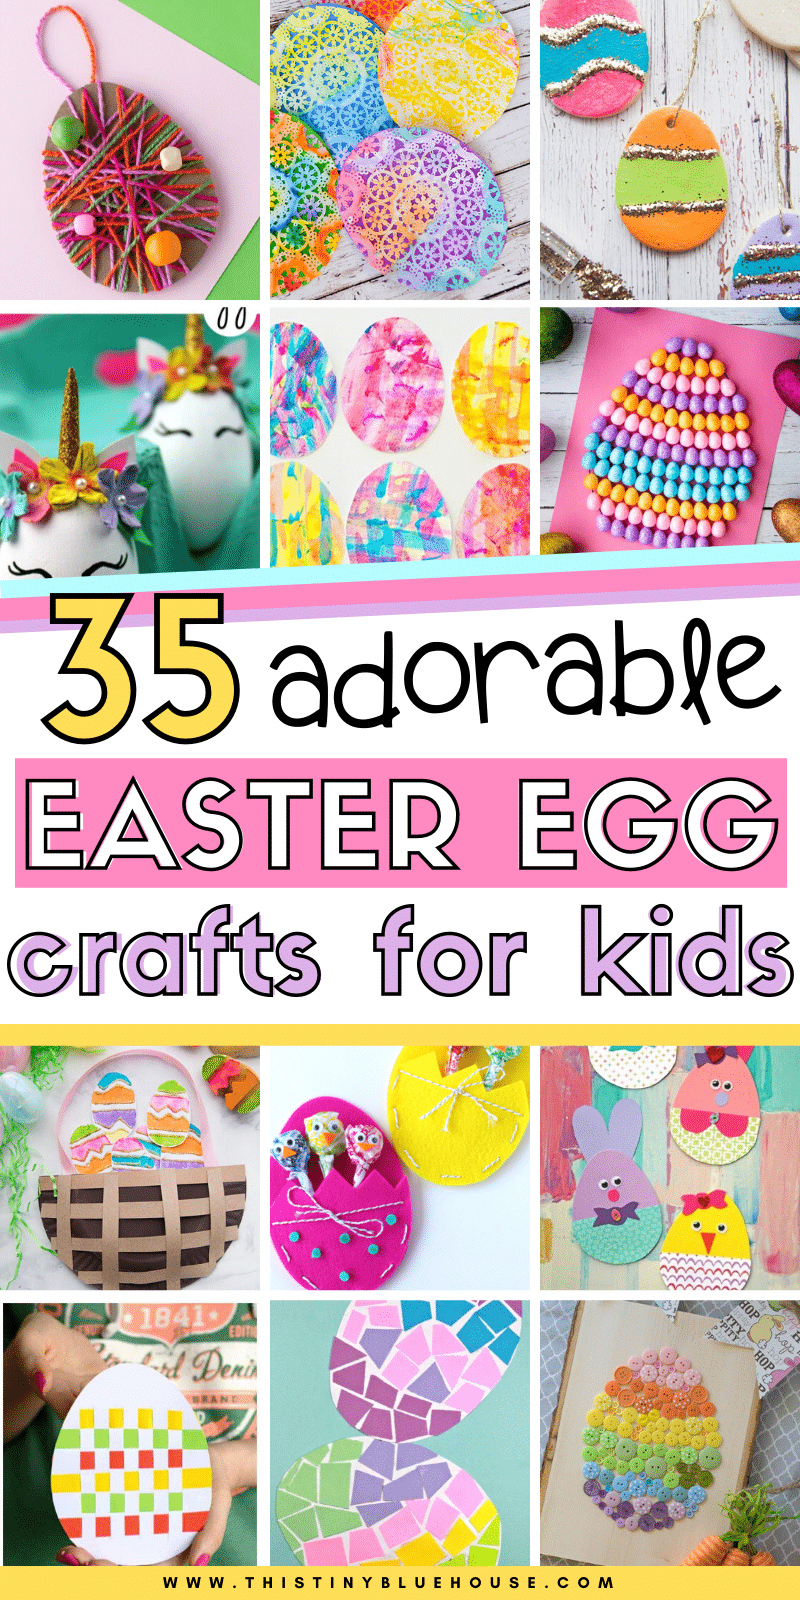 Here are 35 best fun Easter egg crafts for kids that will get you excited about Easter. Easy to make with few supplies these crafts provide hours of fun.